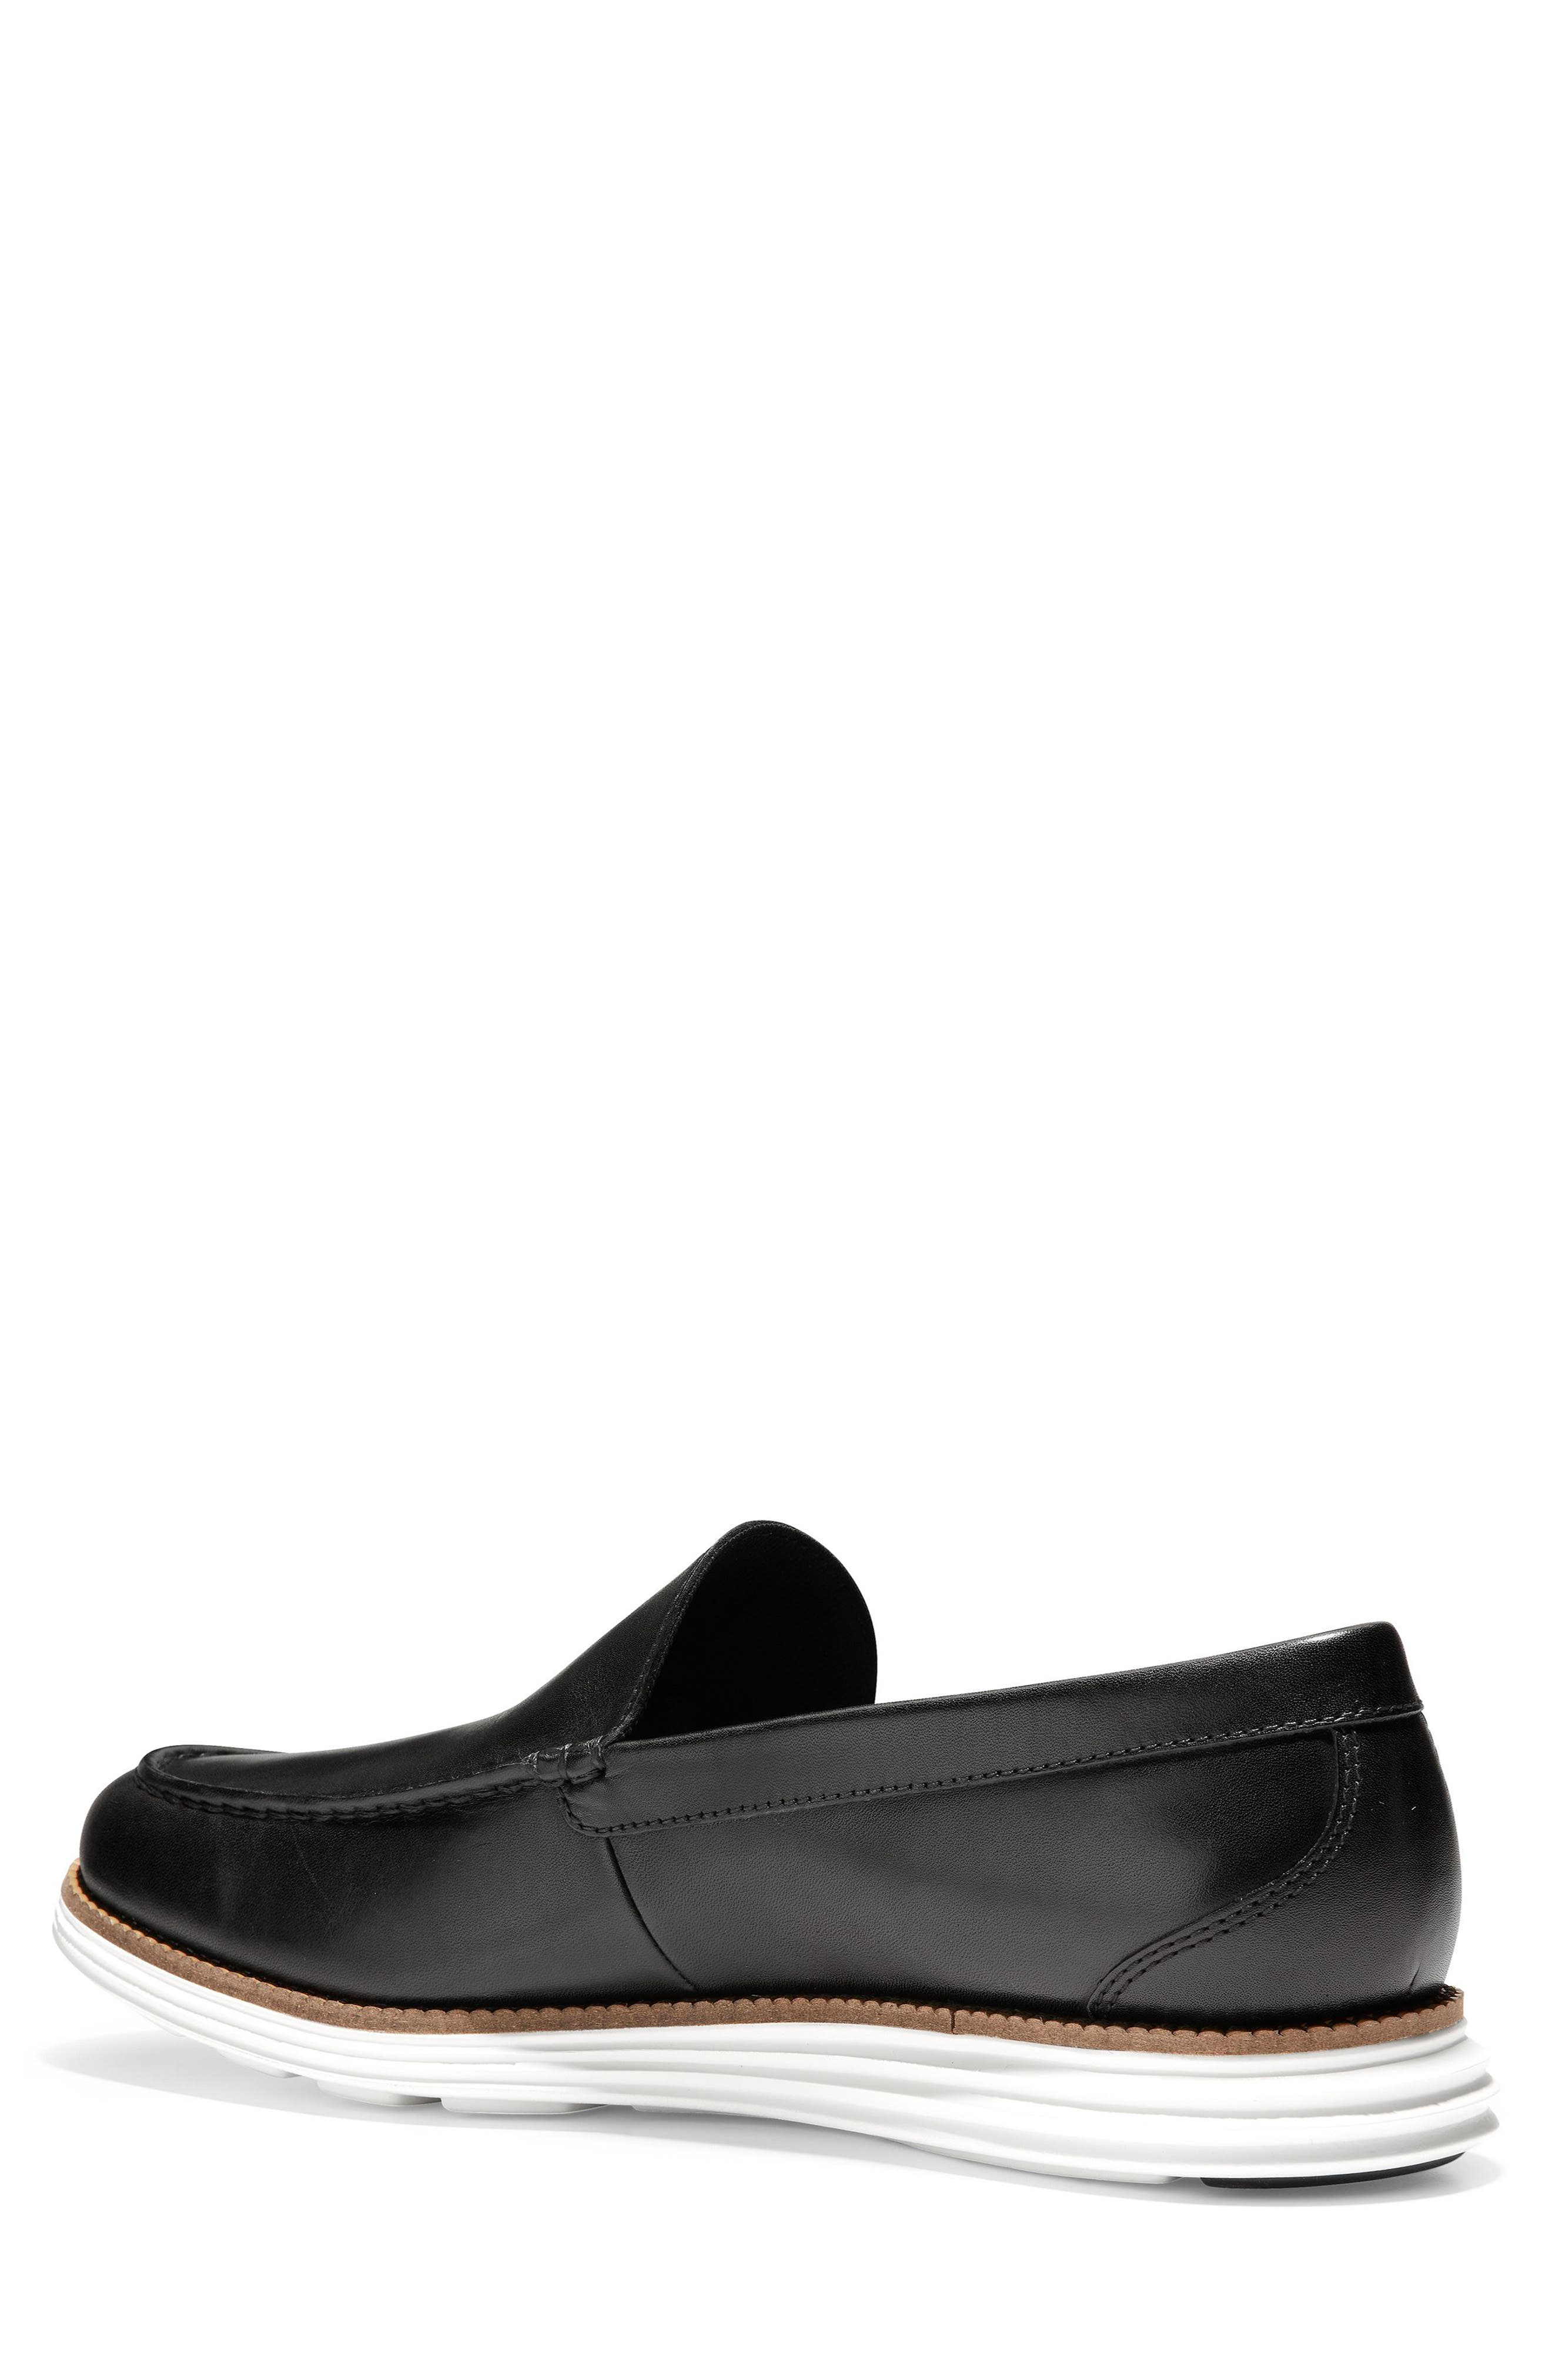 COLE HAAN, Original Grand Loafer, Alternate thumbnail 2, color, BLACK/ OPTIC WHITE LEATHER